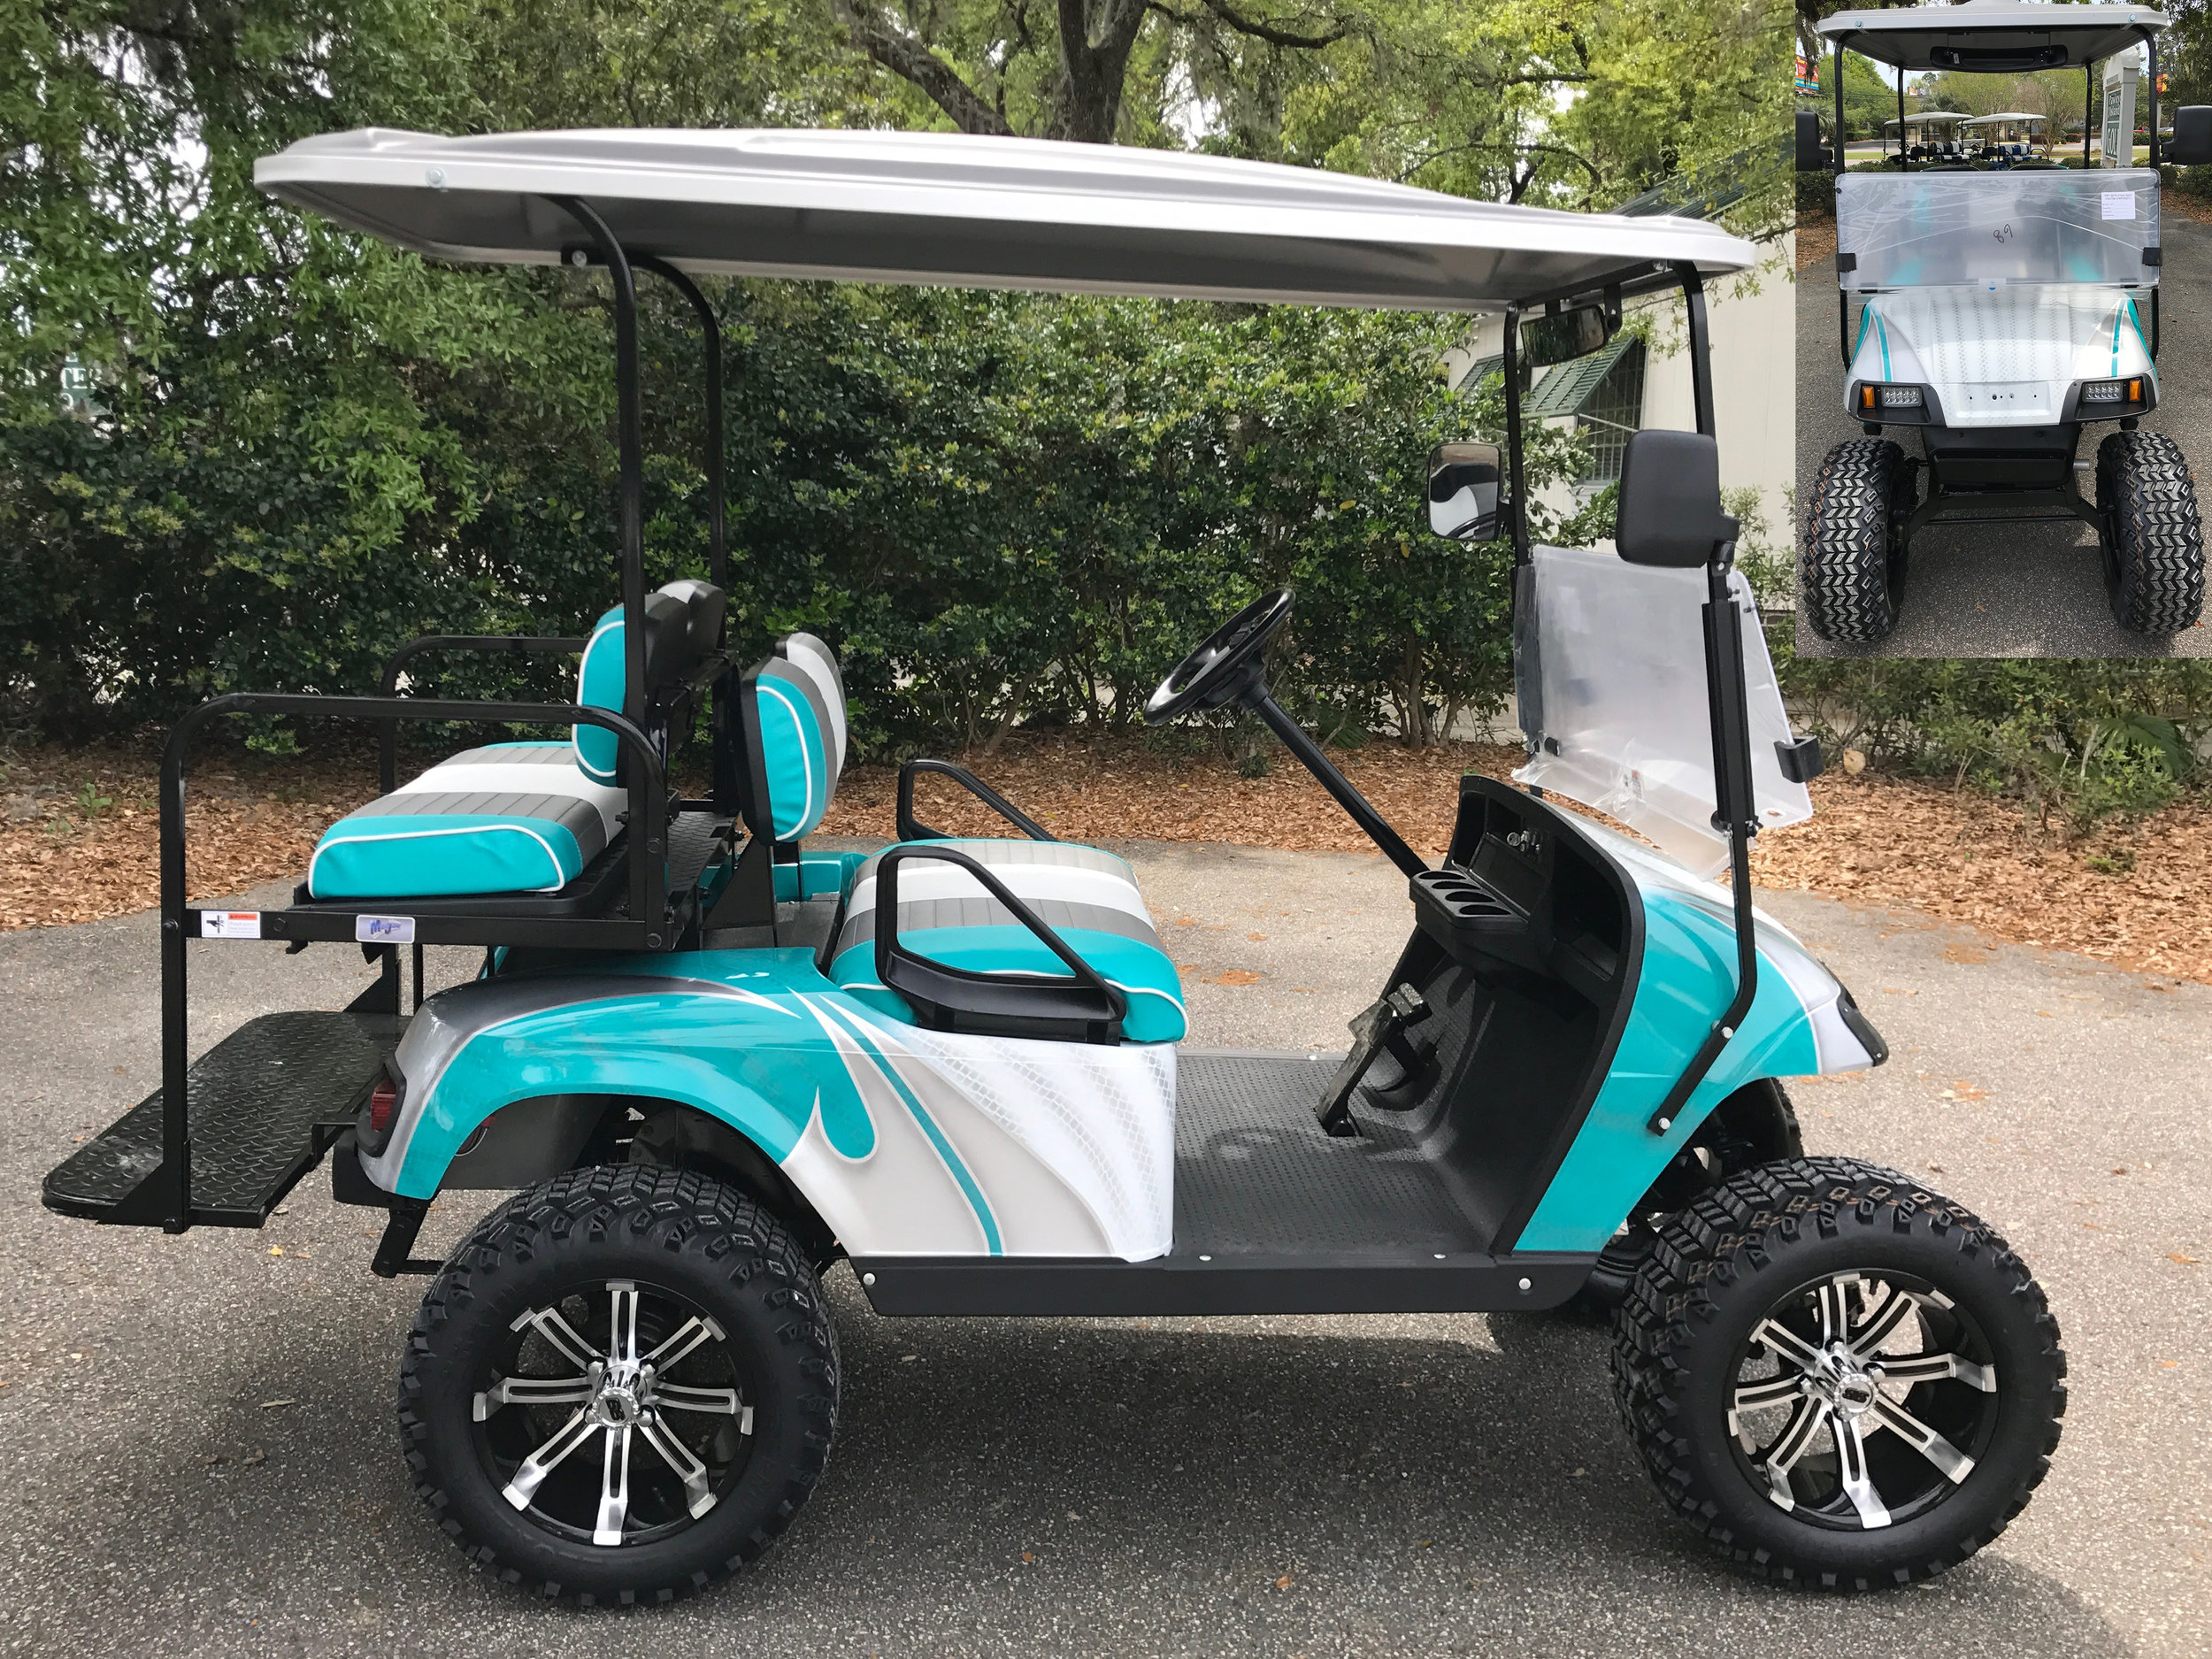 Emerald Swirl EZGO Lifted Cart  Emerald/smoke/white seats, gray extended top, new batteries, high speed code, LED lights, Backlash (23x10x14) tires, state of charge meter, rear view mirror, side mirrors, and flip windshield